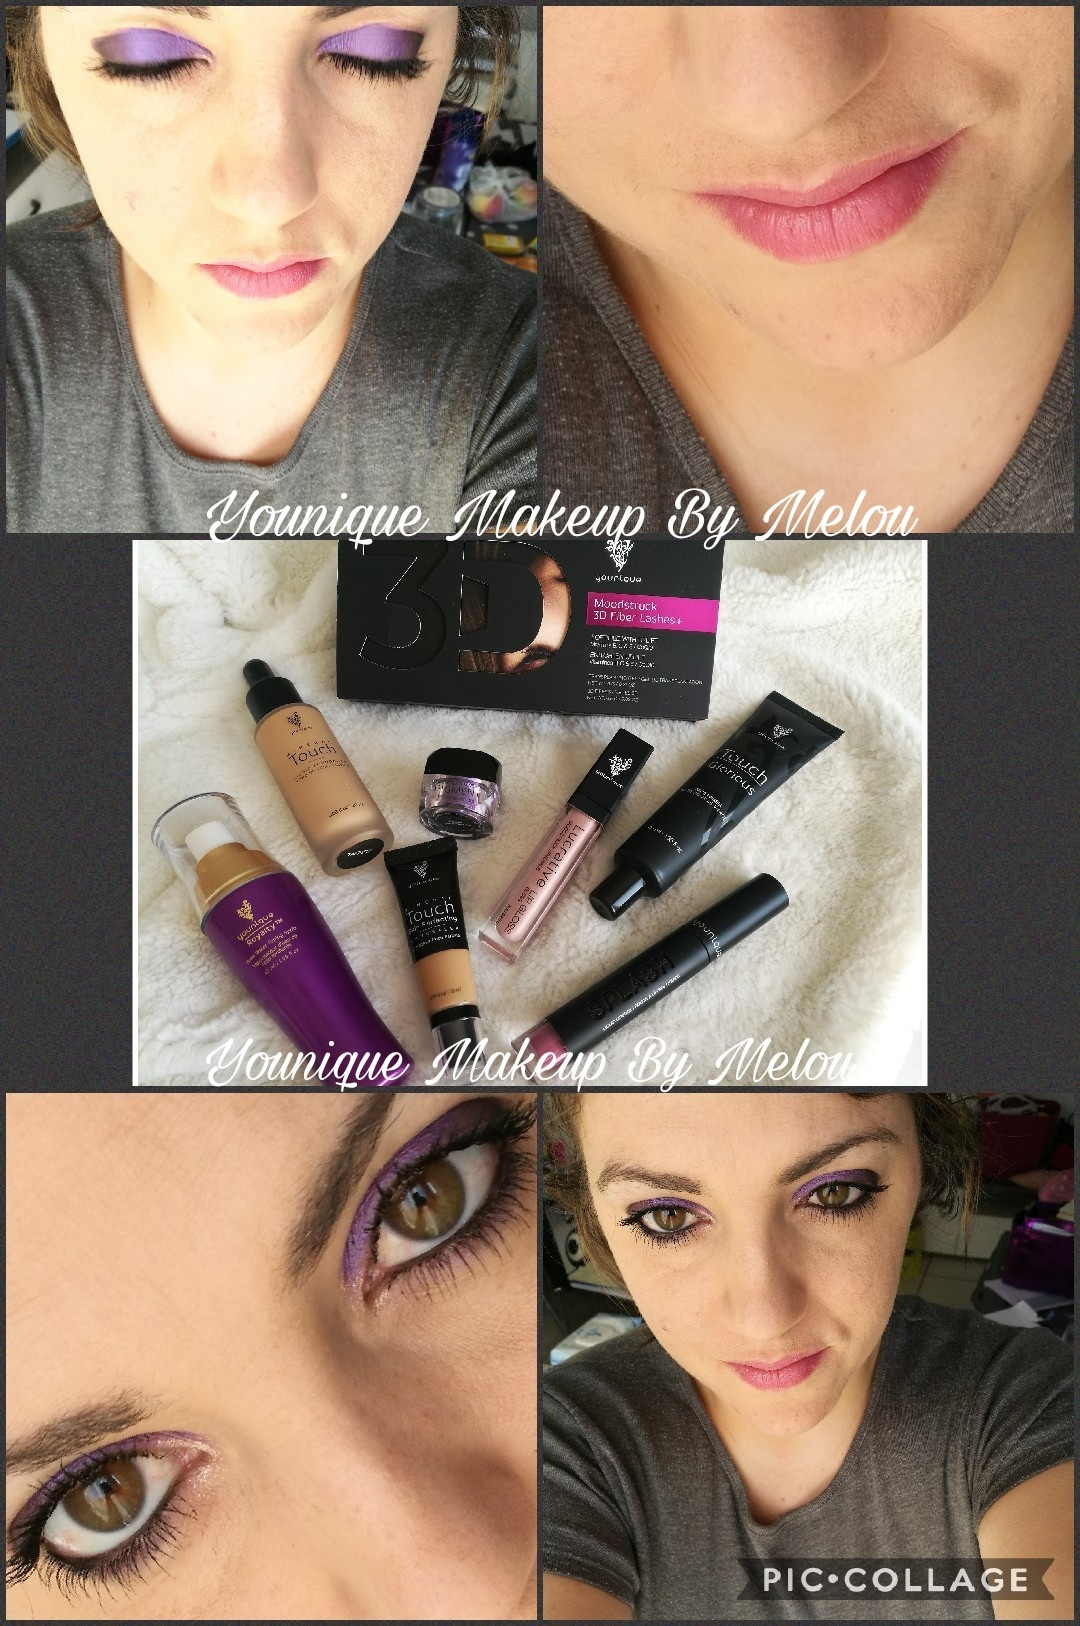 Photos maquillage partagées sur la page Facebook du forum